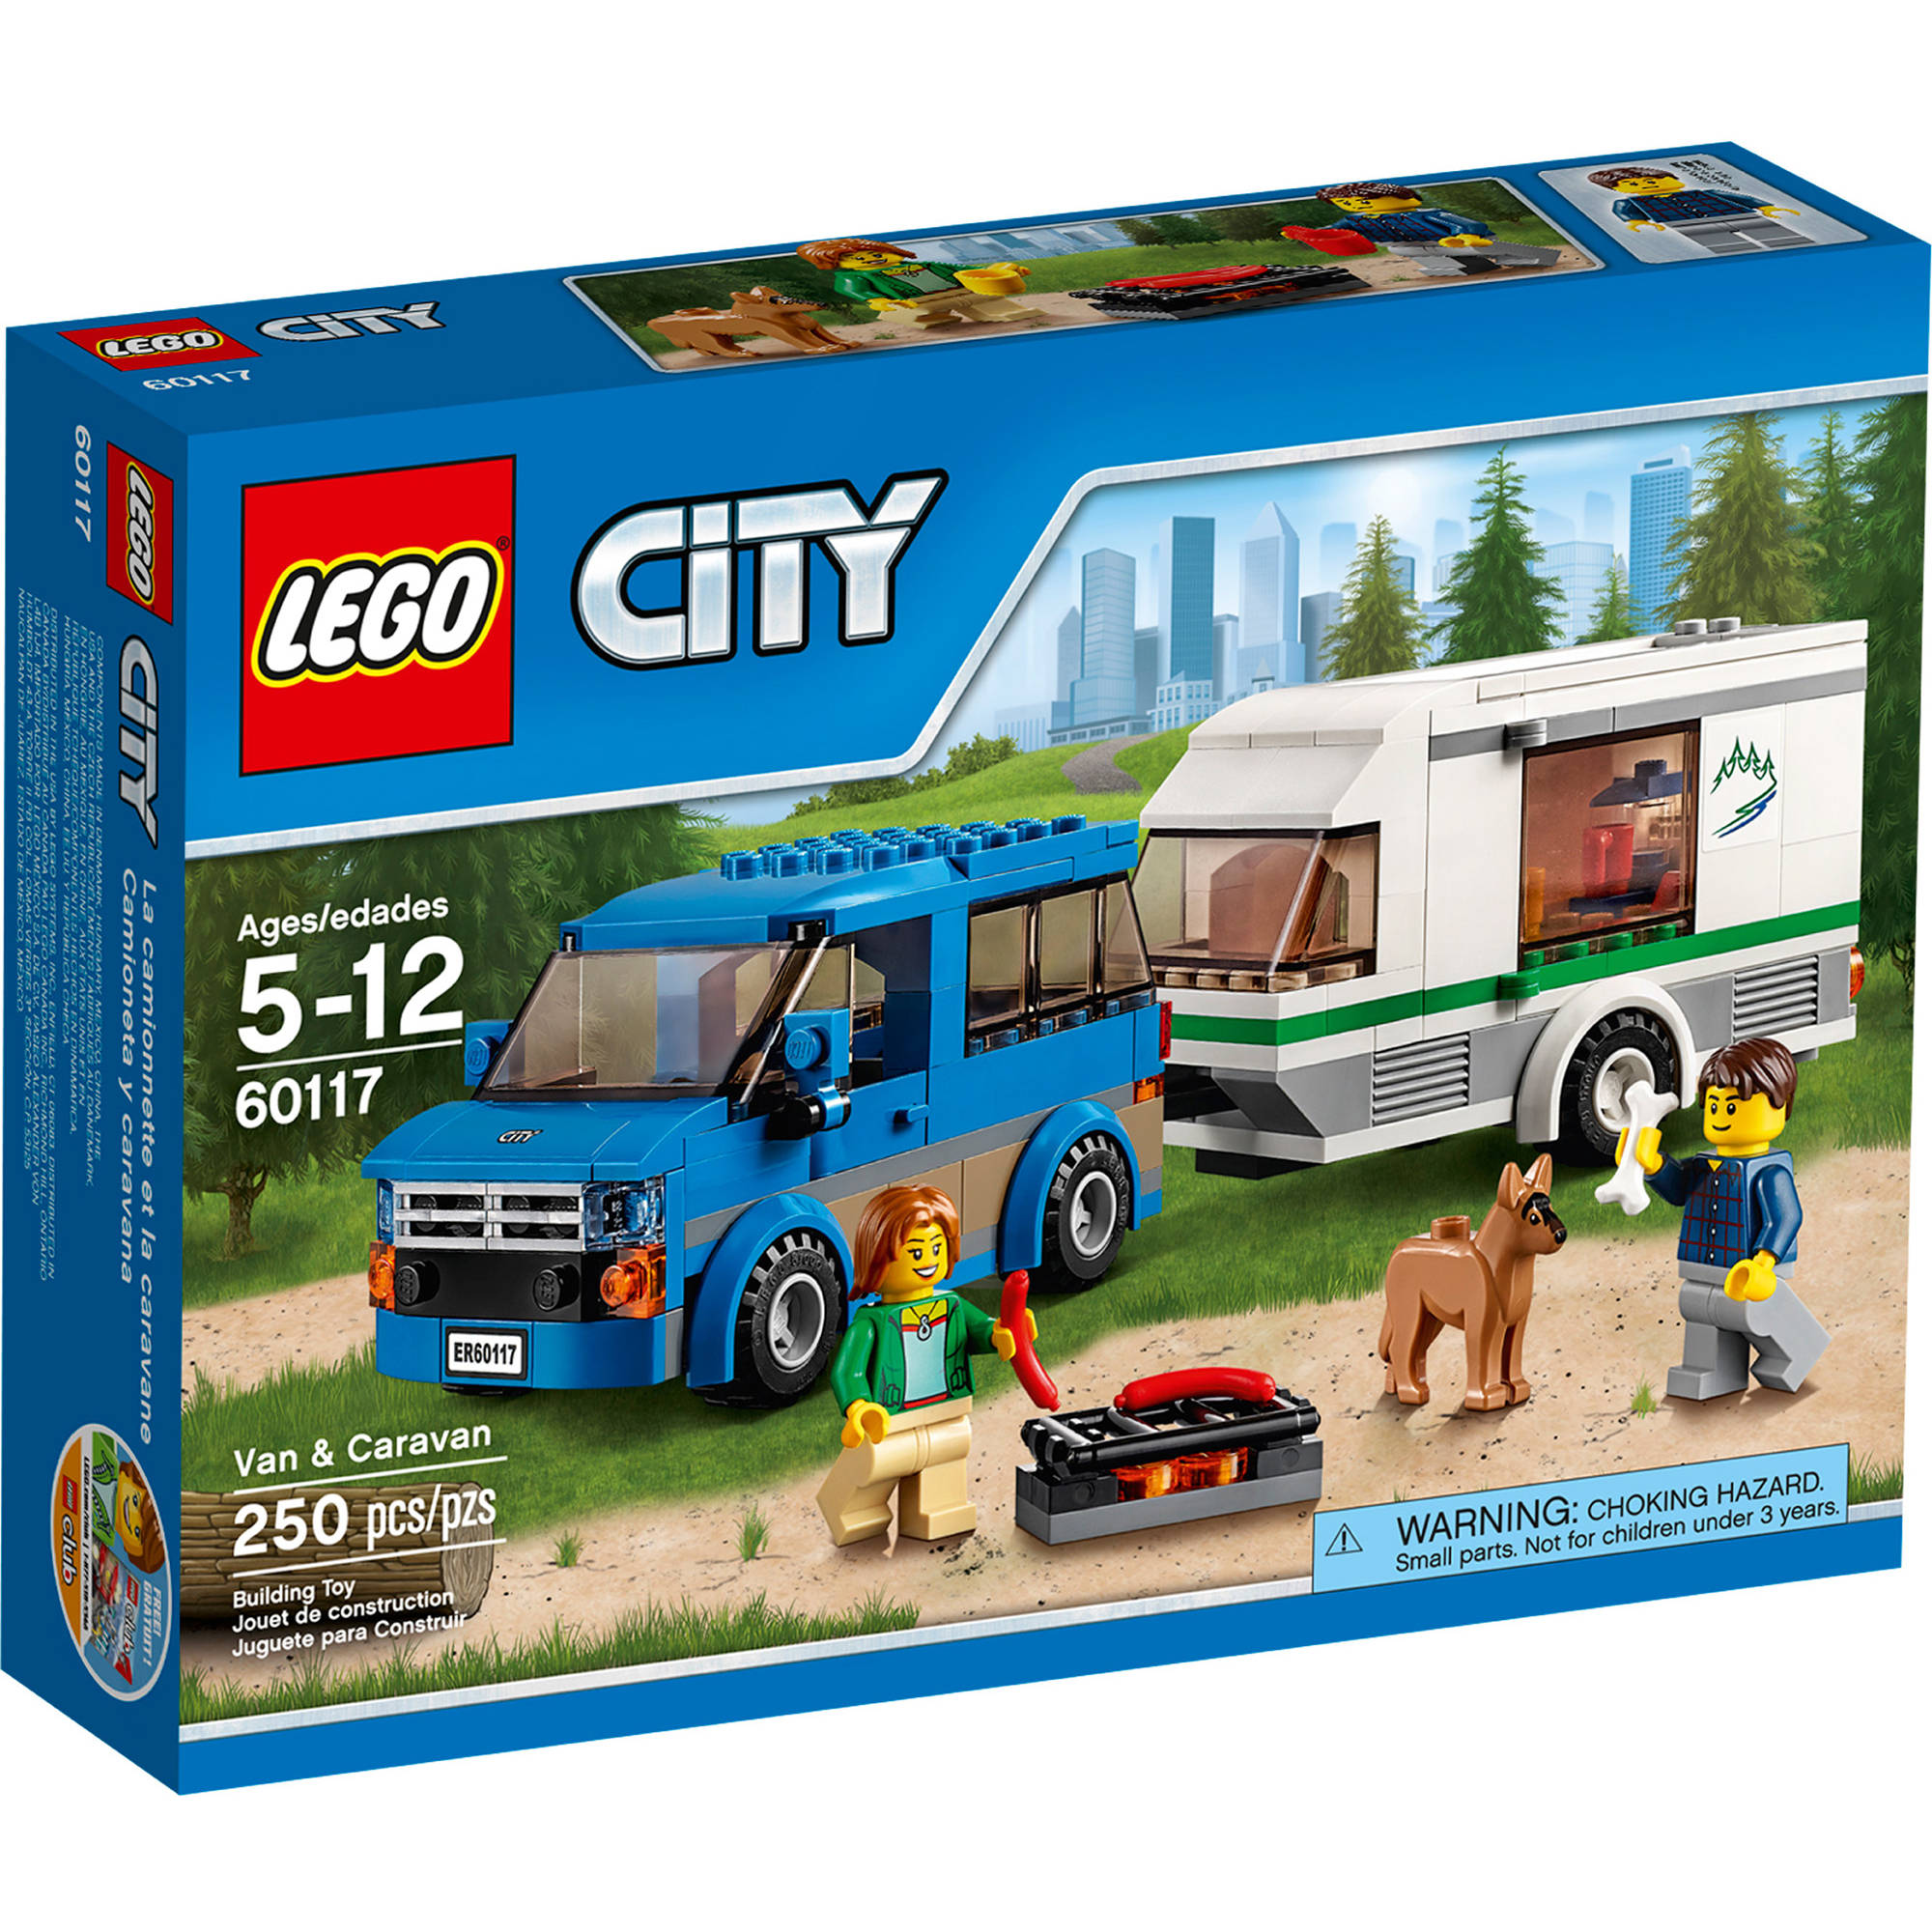 LEGO City Great Vehicles Van & Caravan 60117